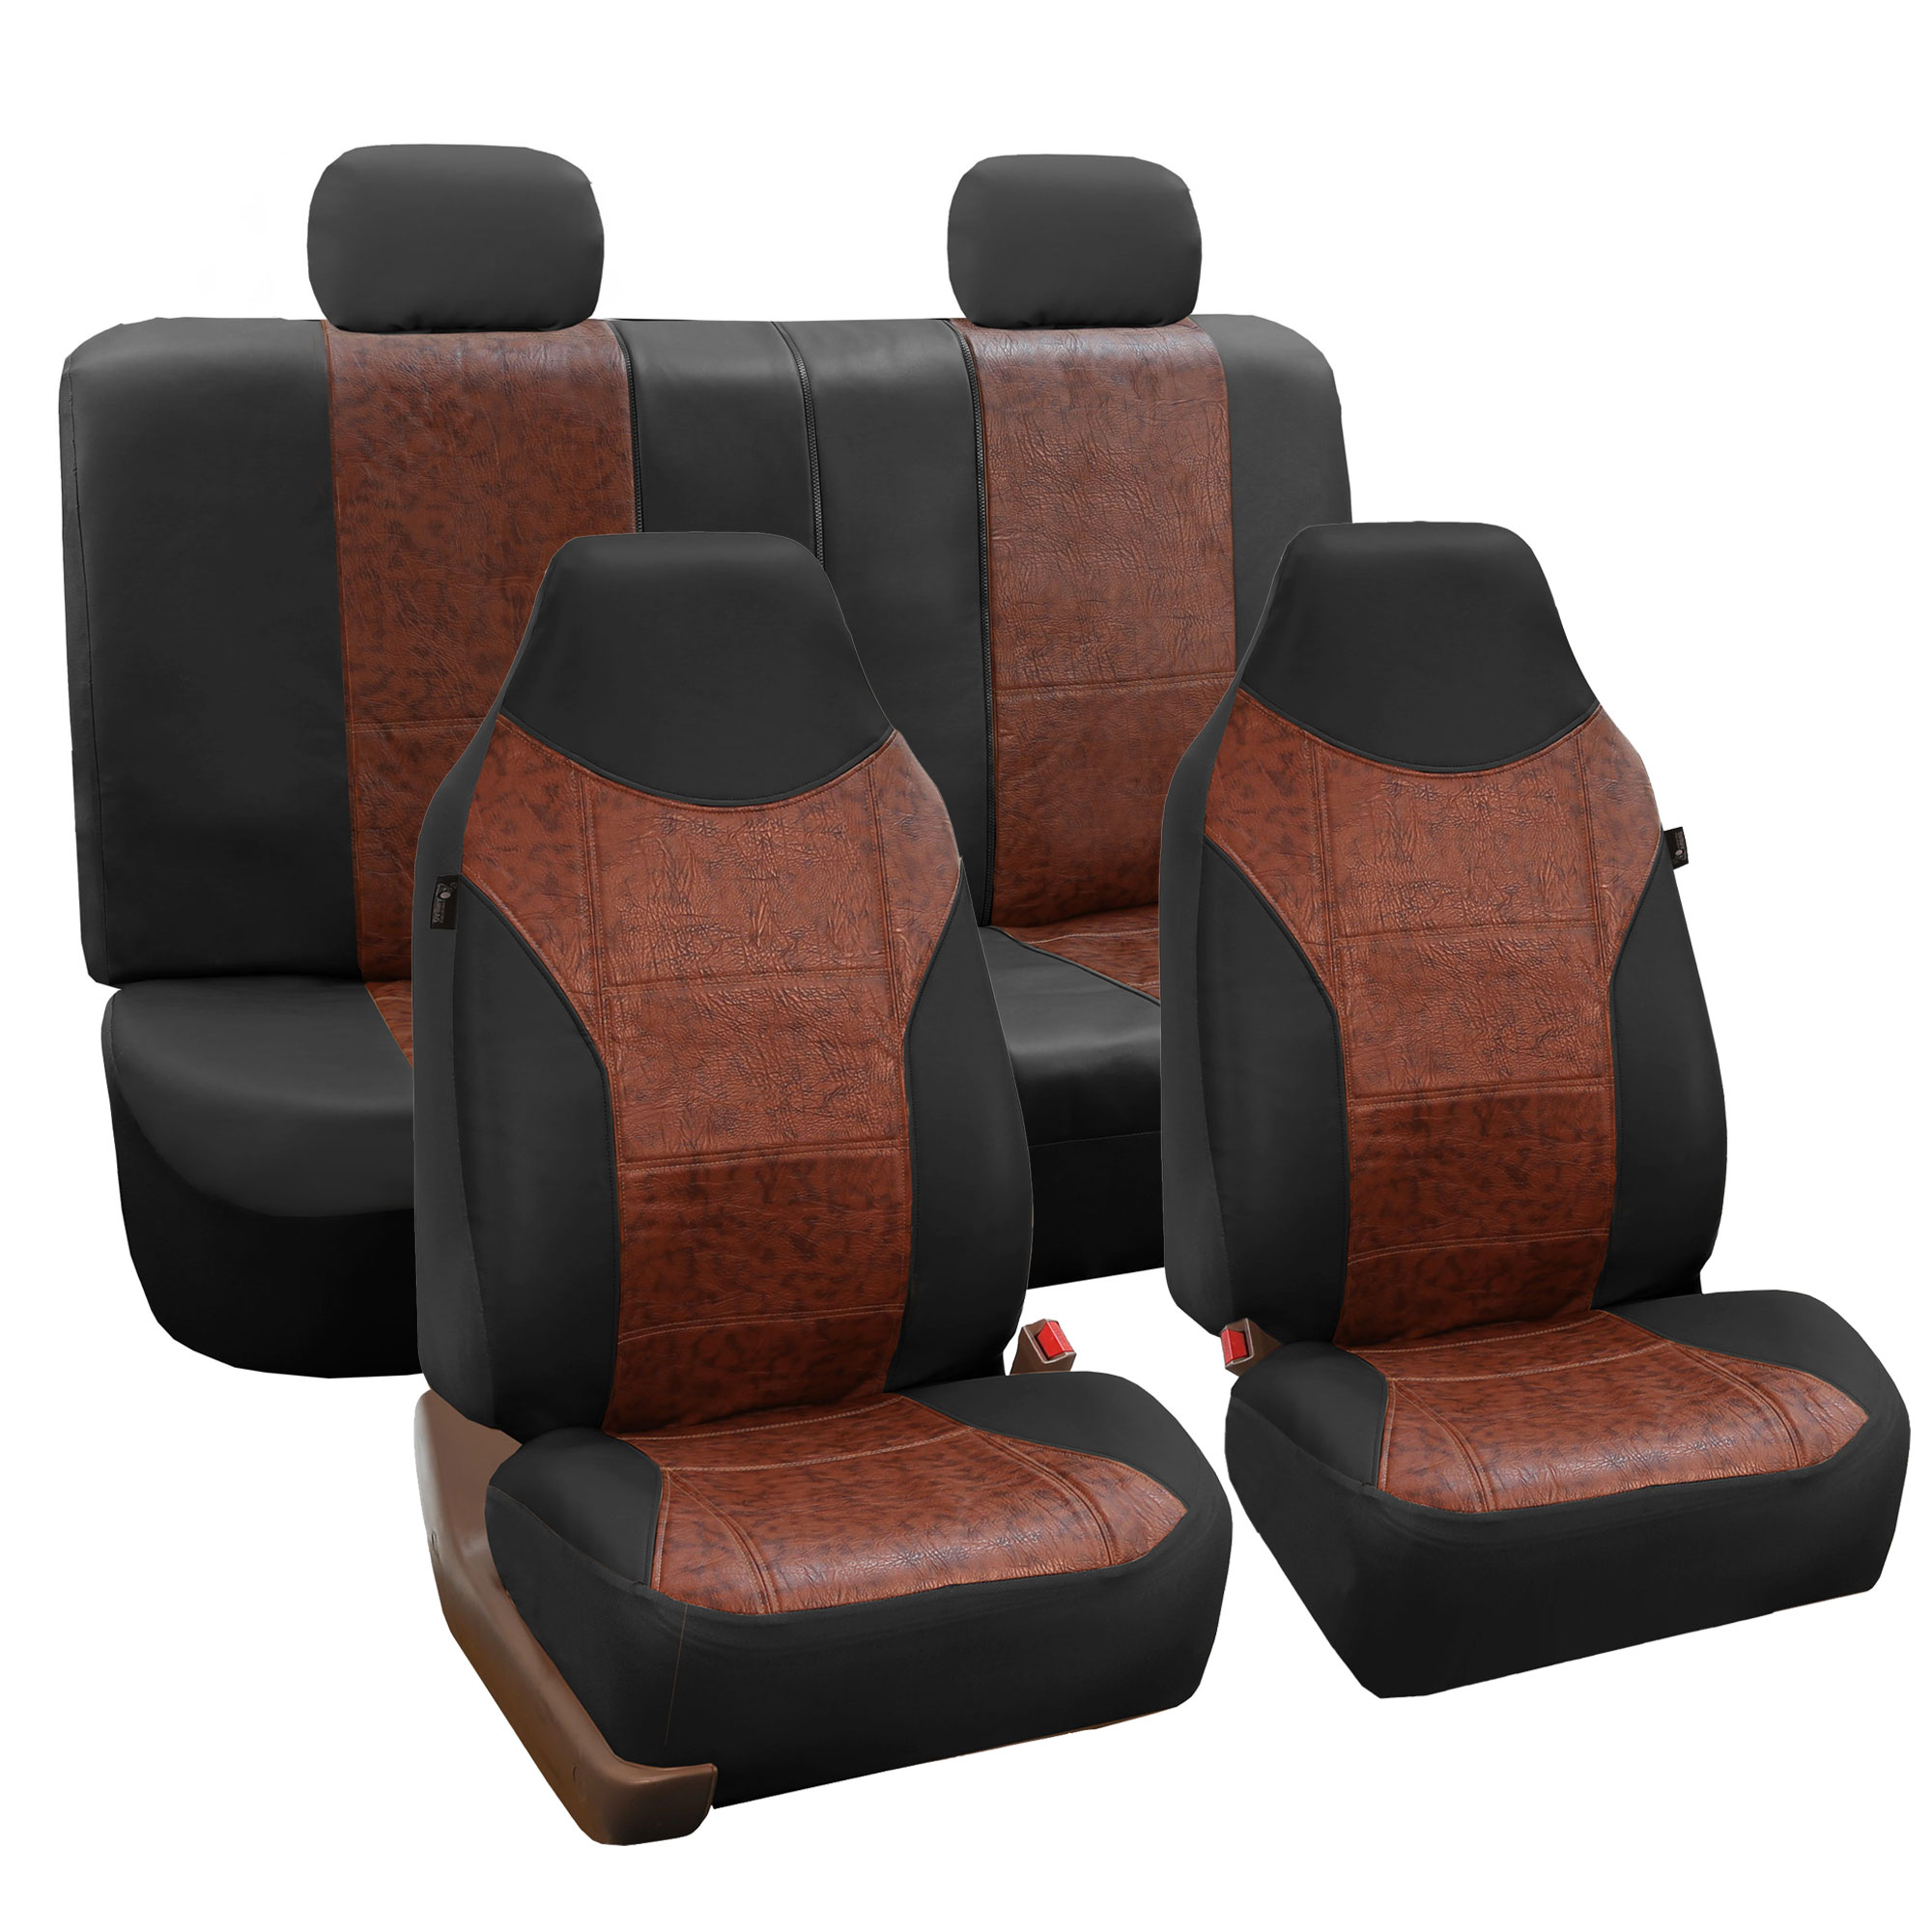 Luxury PU Leather Car Seat Cover Sporty Look Black Brown